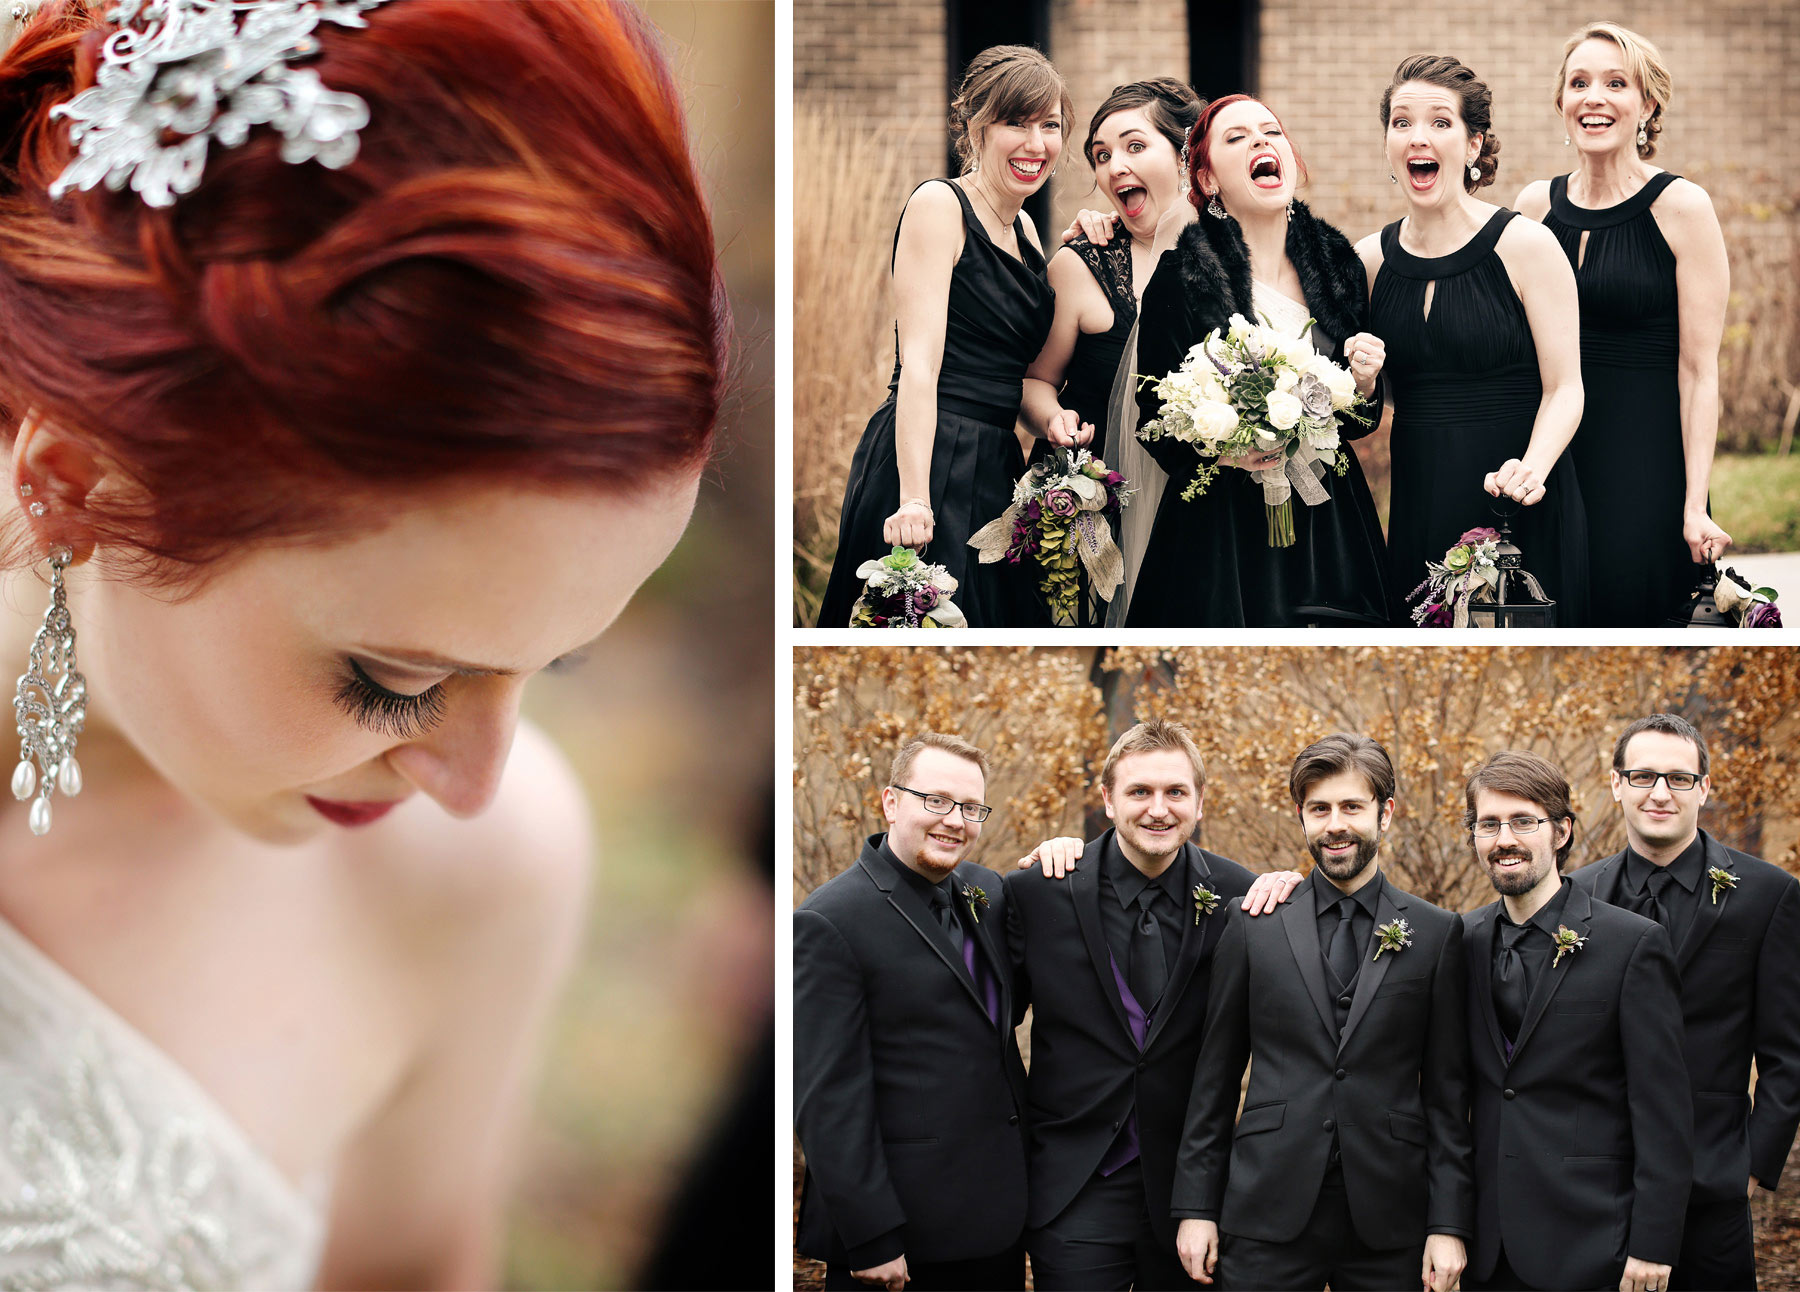 07-Minneapolis-Minnesota-Wedding-Photography-by-Vick-Photography-Trinity-Episcopal-Church-Bridesmaids-Groomsmen-Hair-Ashley-and-Aaron.jpg